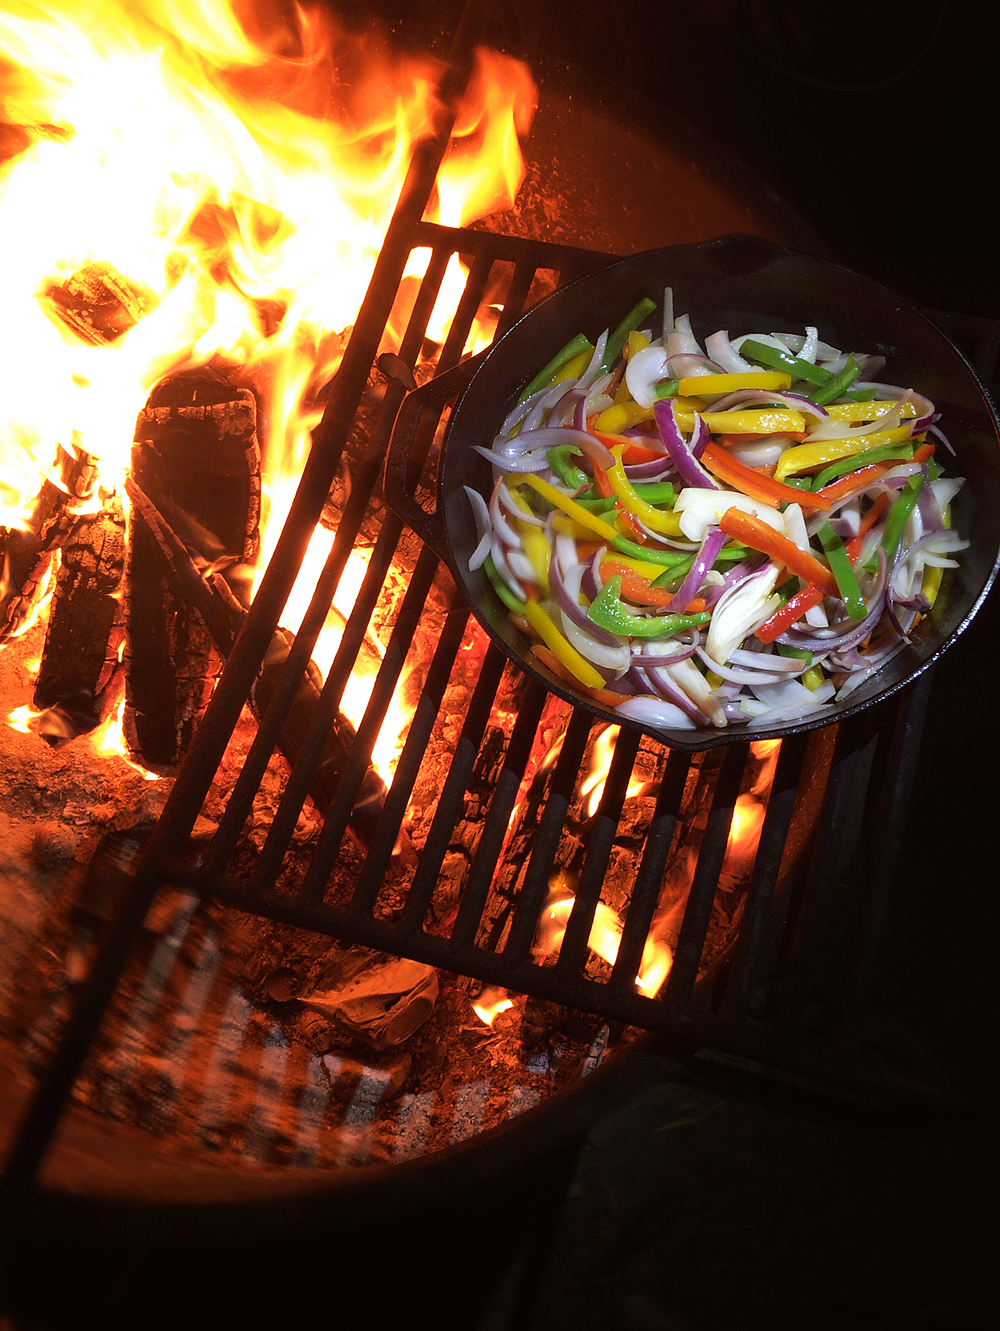 Roasting Veggies in Big Bear, CA